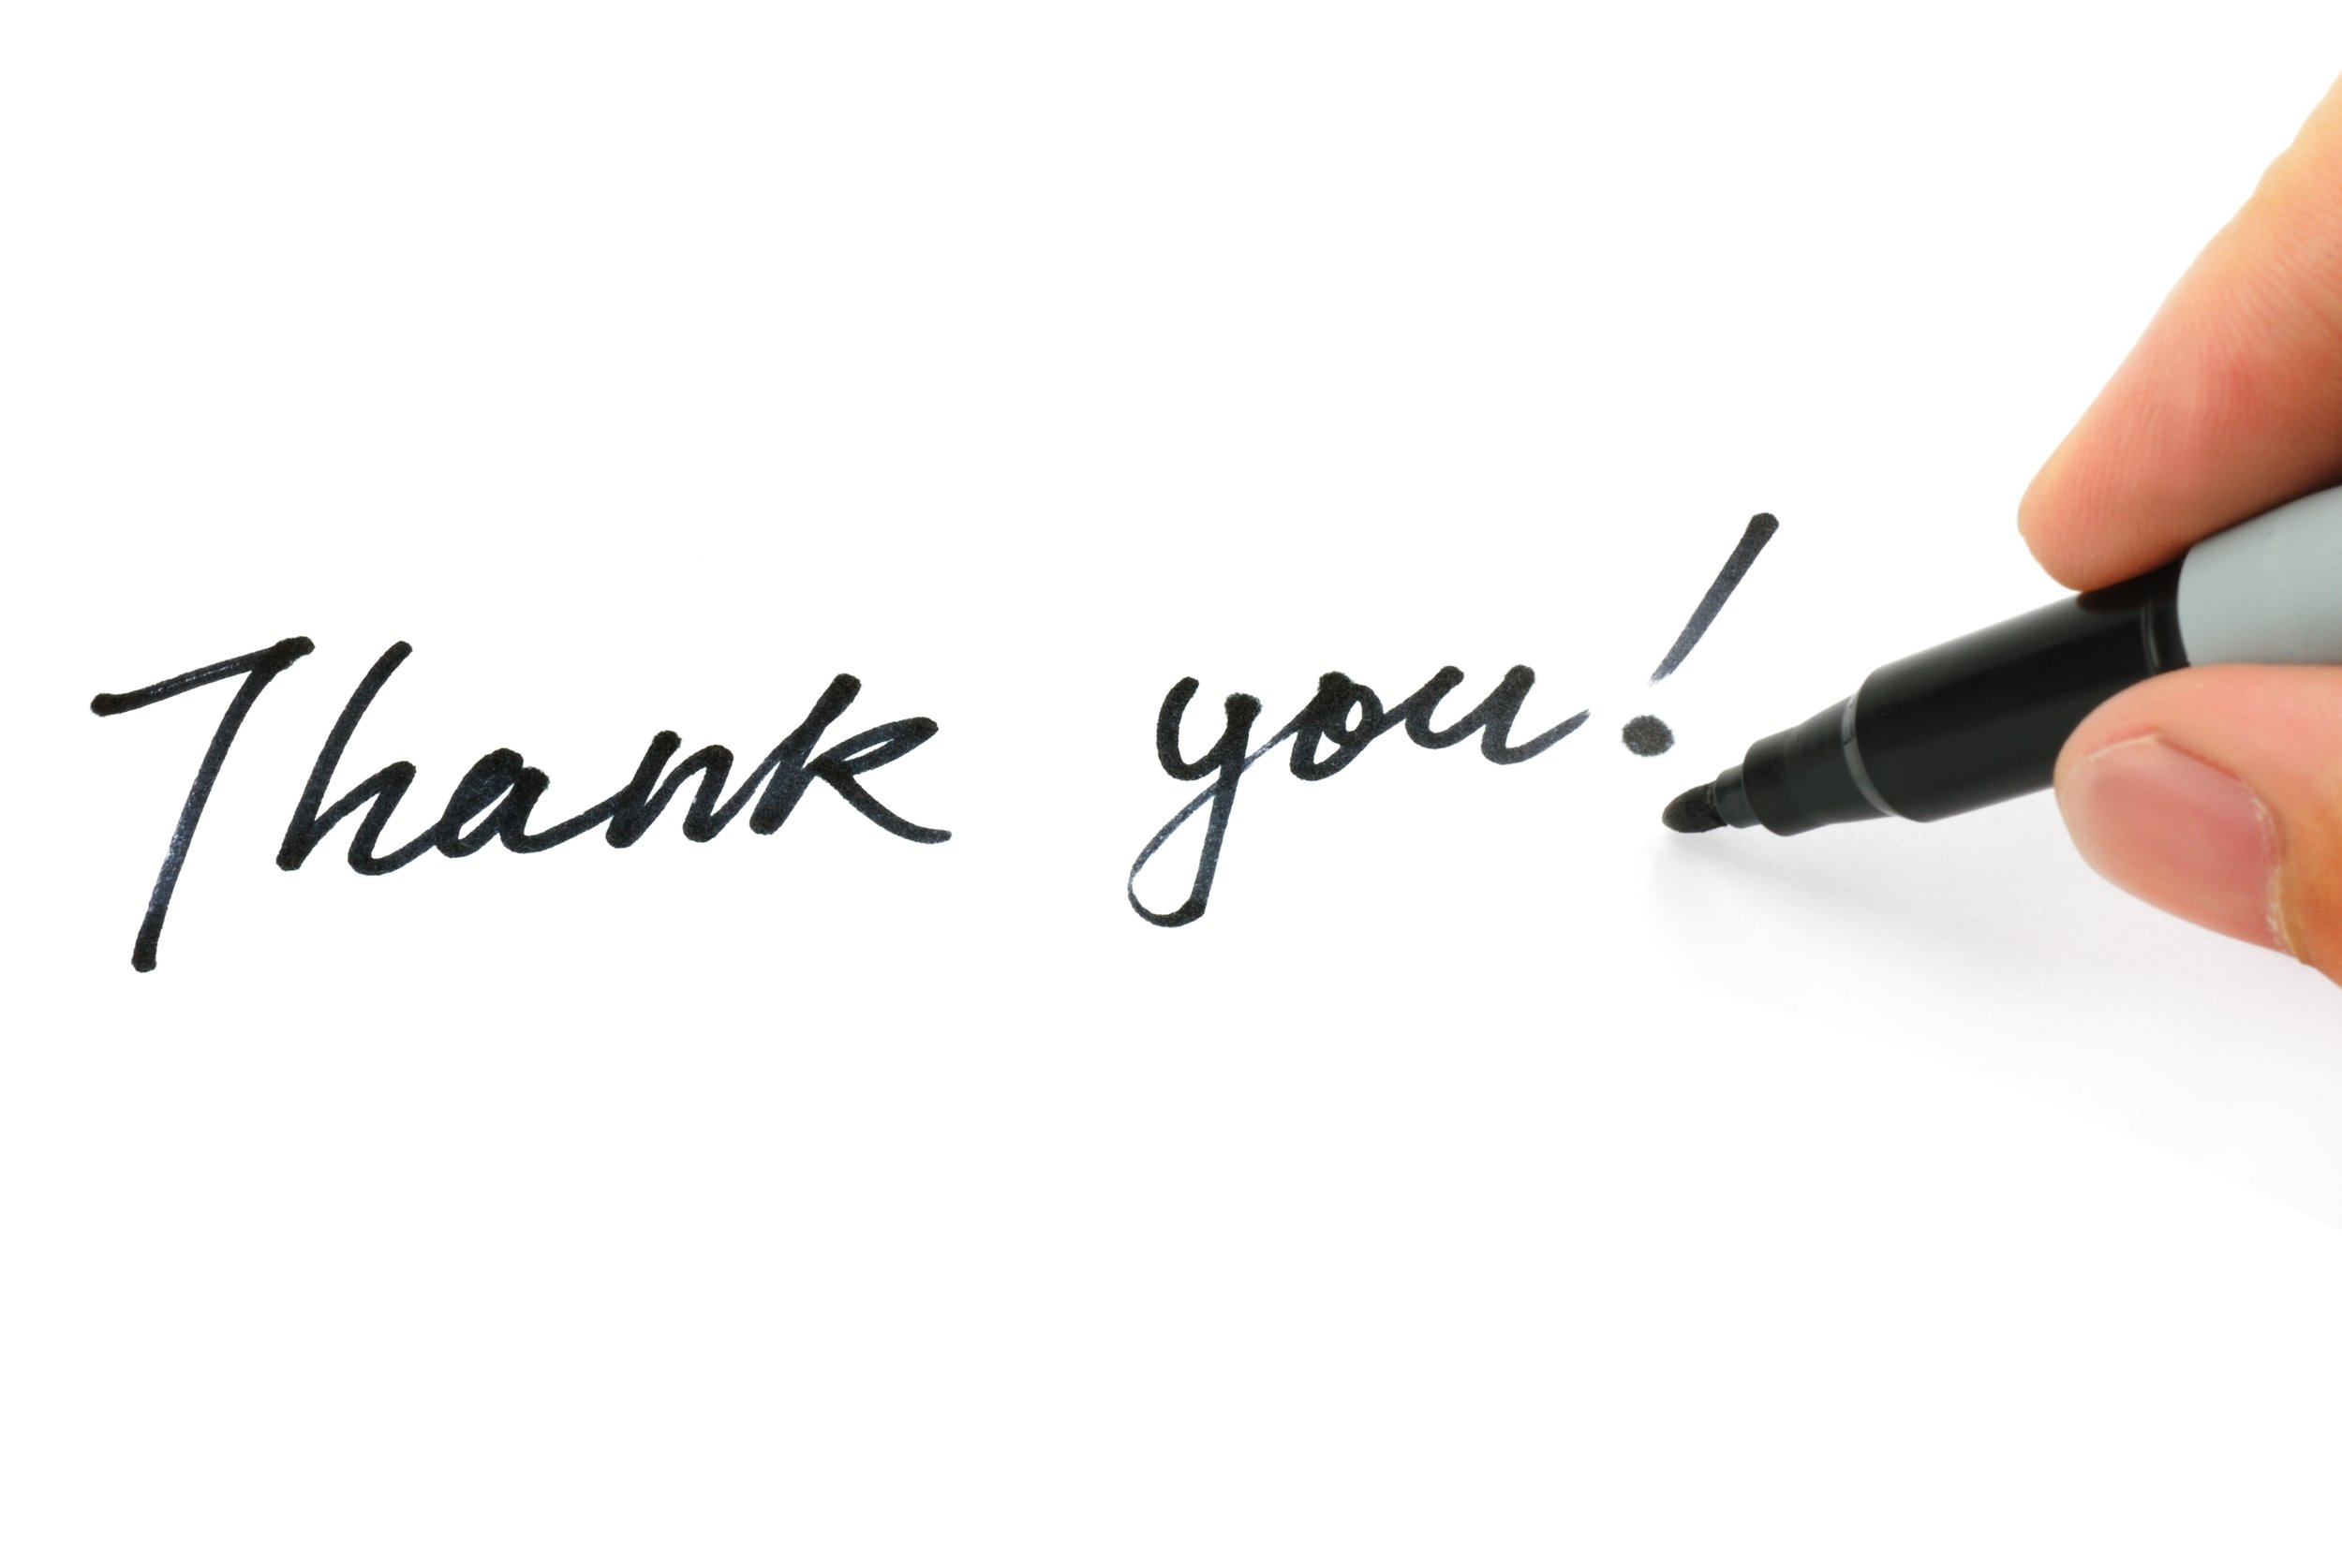 thank_you_inscription_05_hd_pictures.jpg